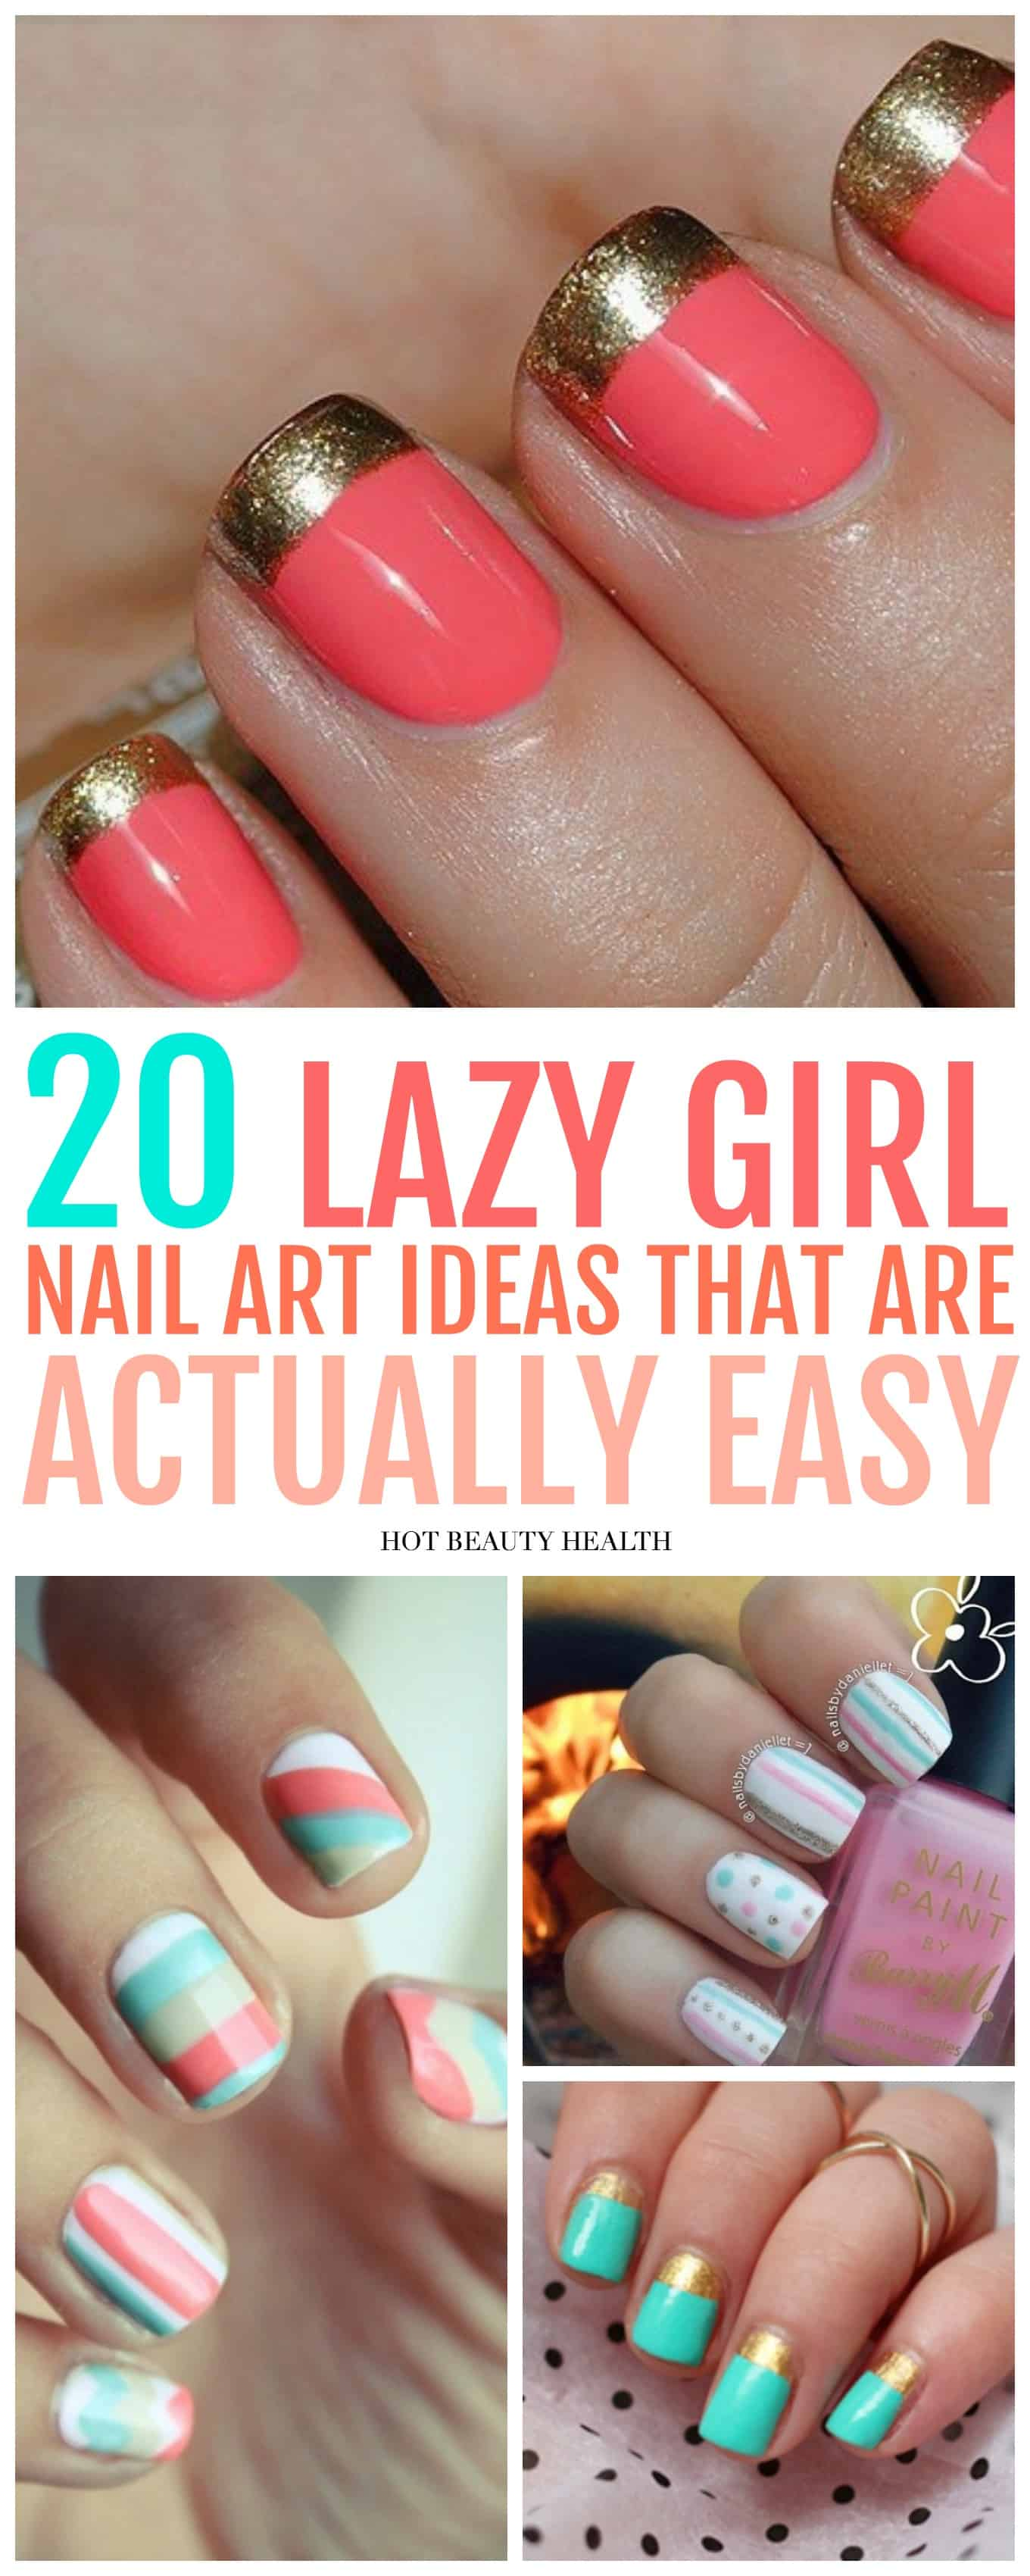 Here's a curated list of 20 simple nail art designs for beginners. These cute diy nail ideas are so easy that any nail newbie can do them! Click pin for step by step tutorials! Hot Beauty Health #naildesign #nailtutorials #nailart